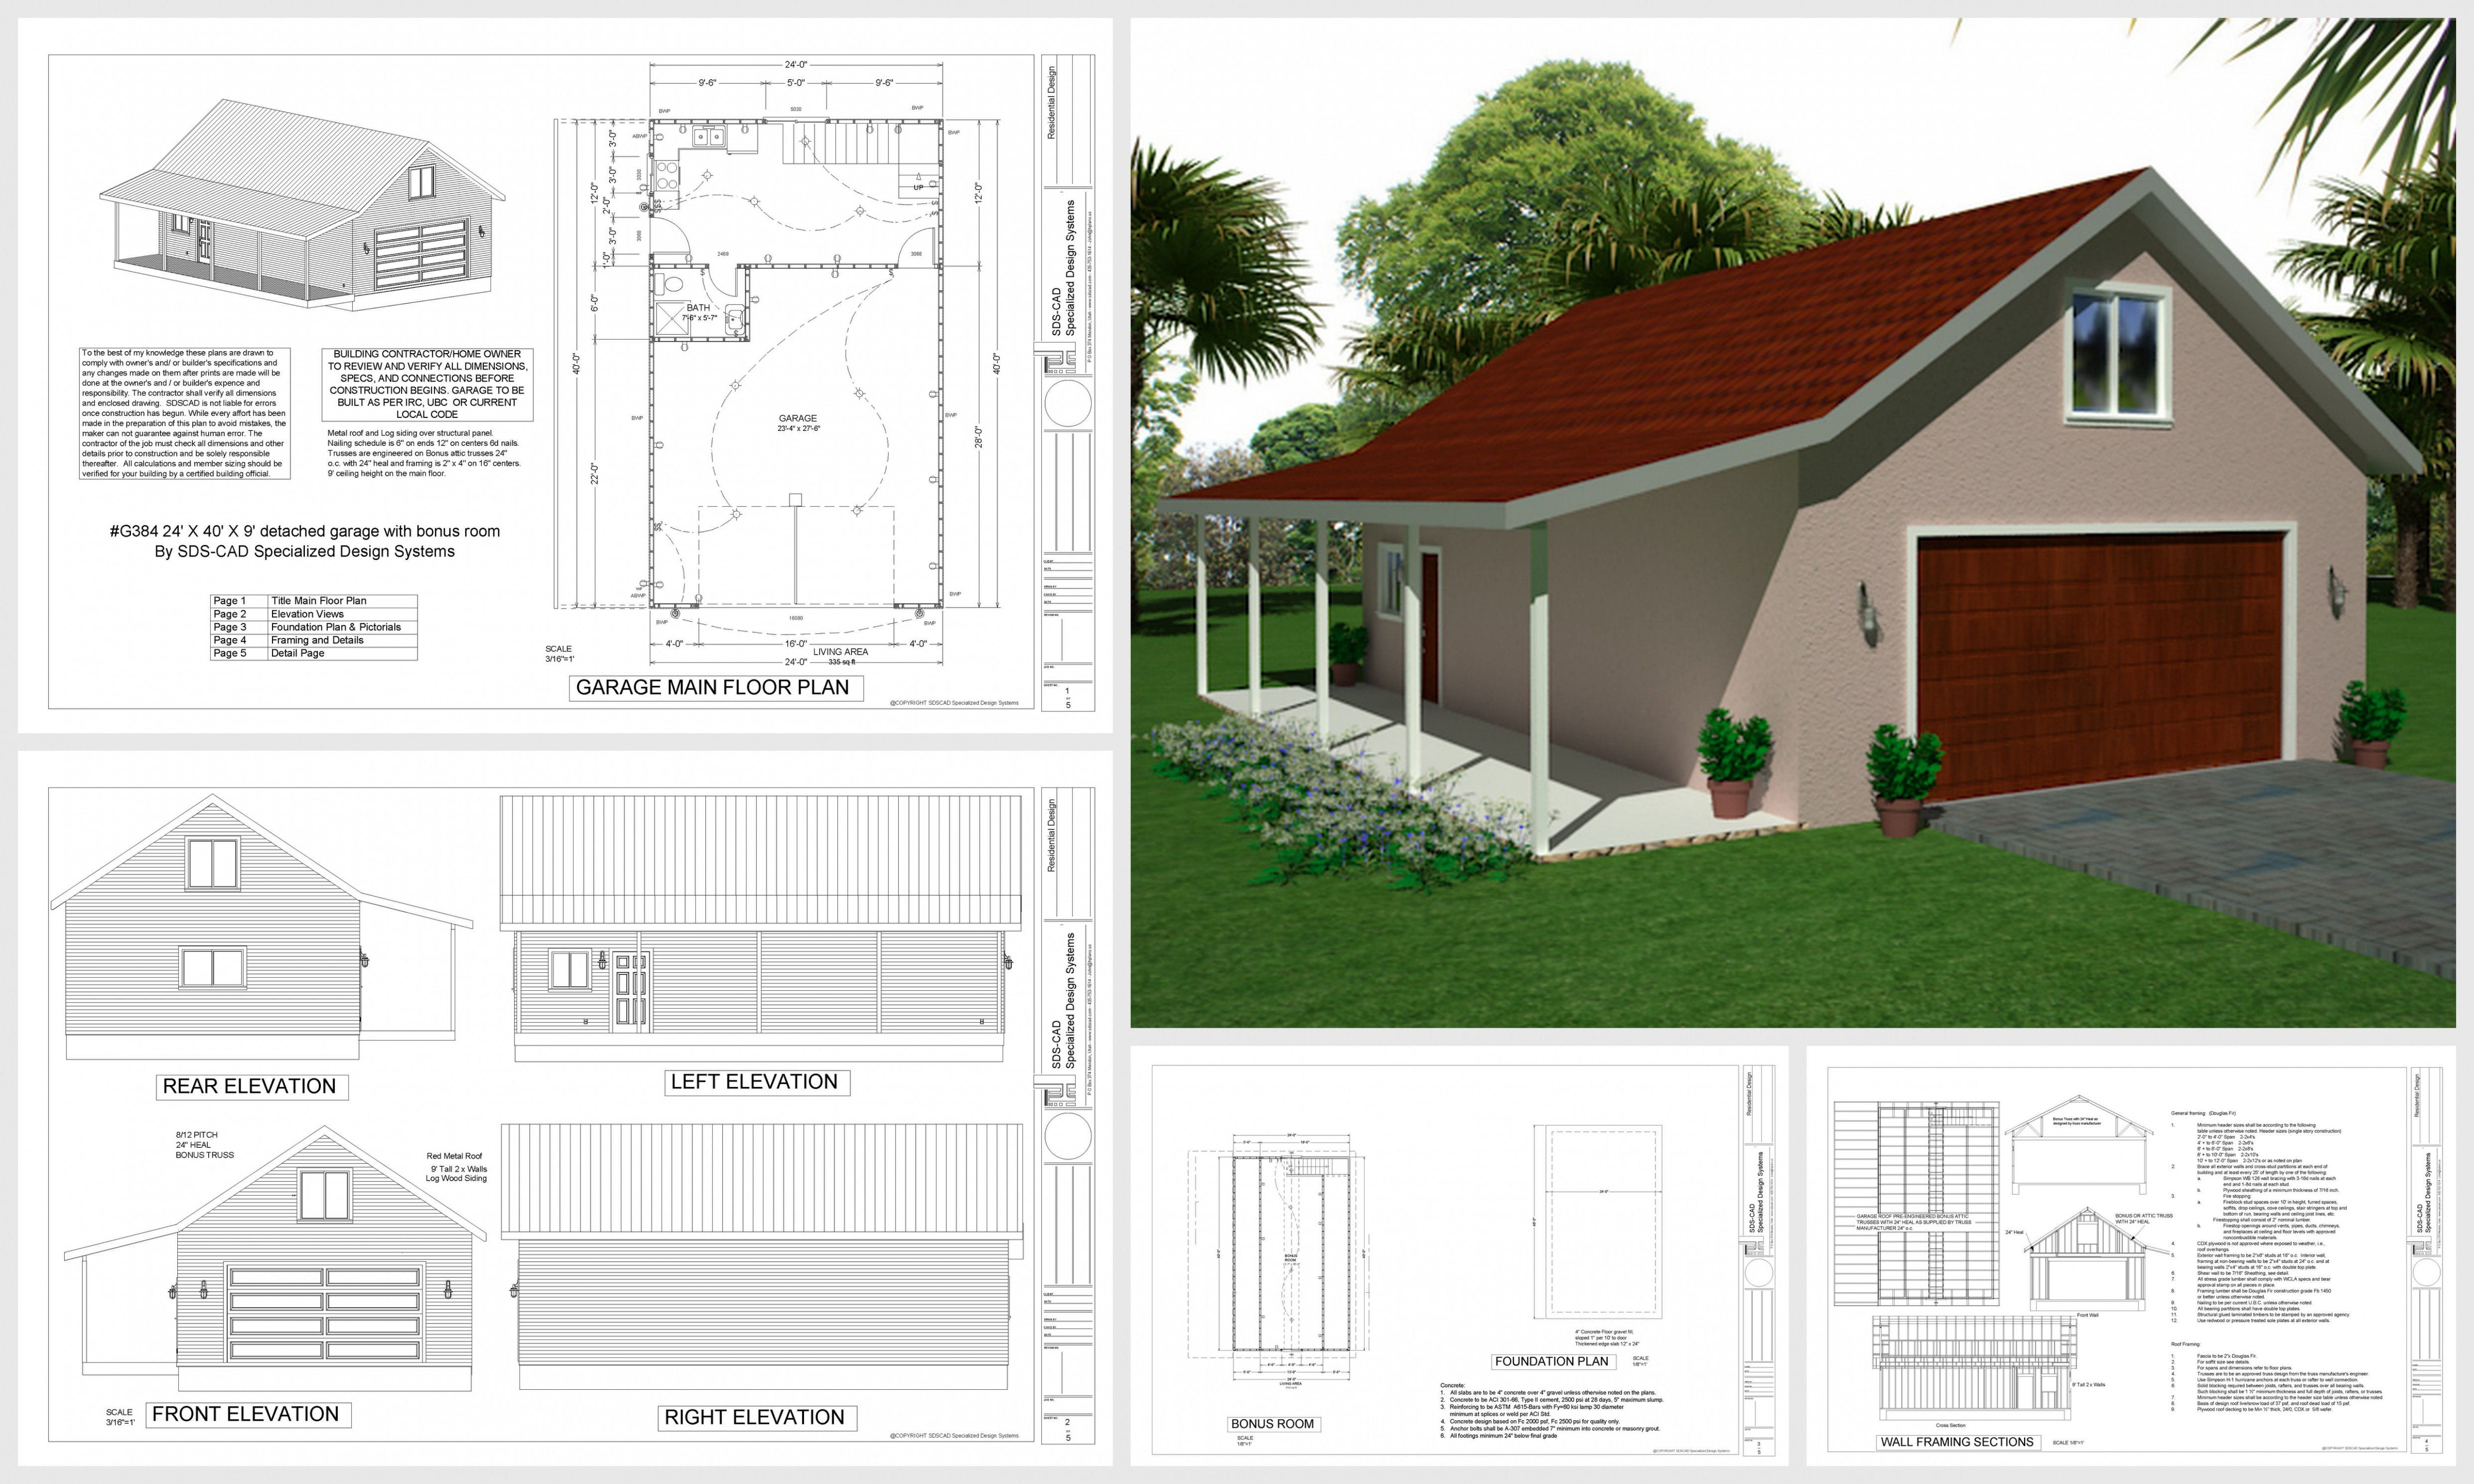 8 FREE Detailed DIY Garage Plans With Instructions To ..